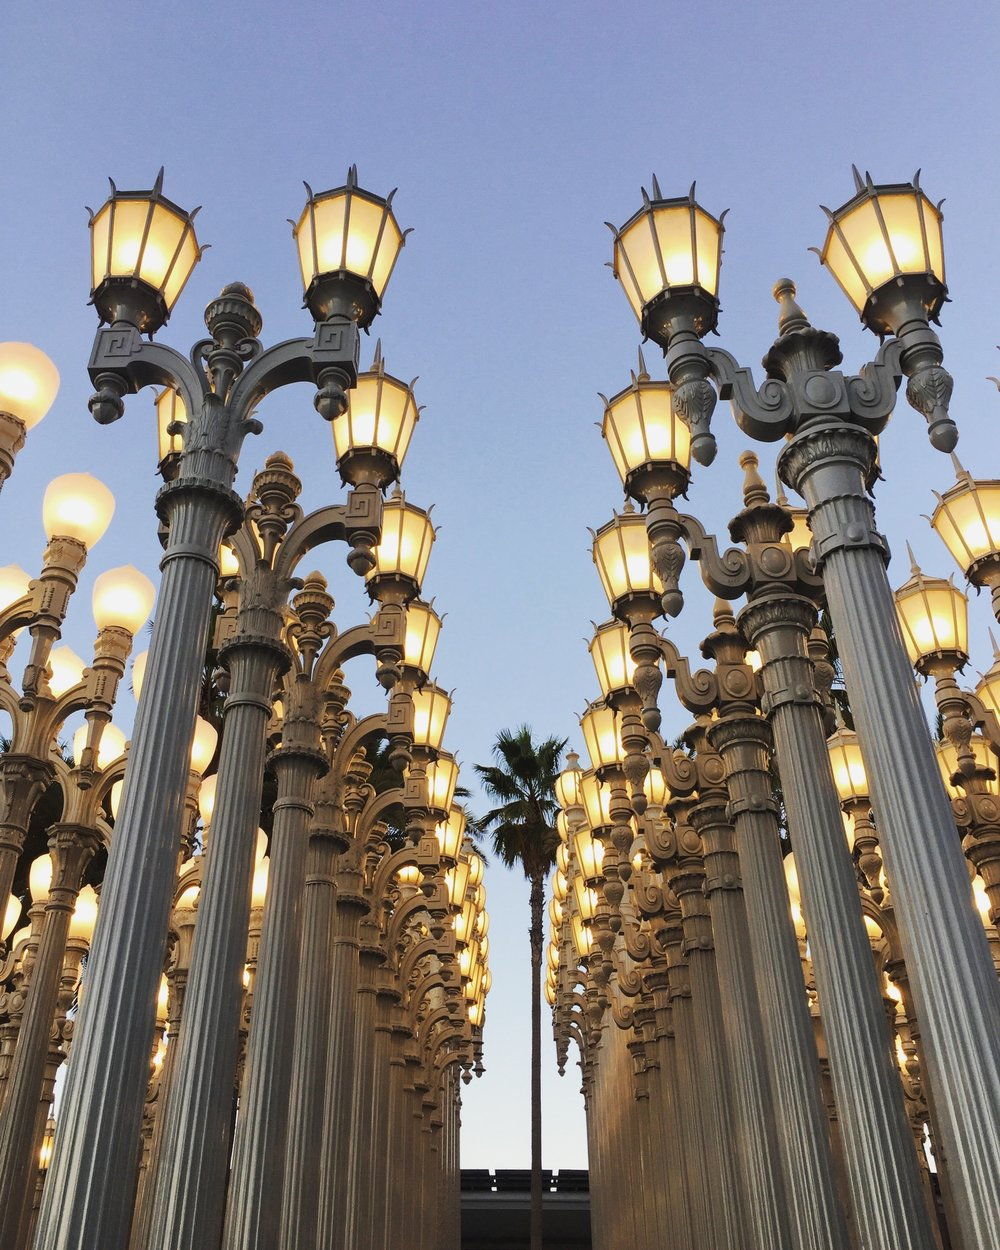 Urban Light installation by Chris Burden